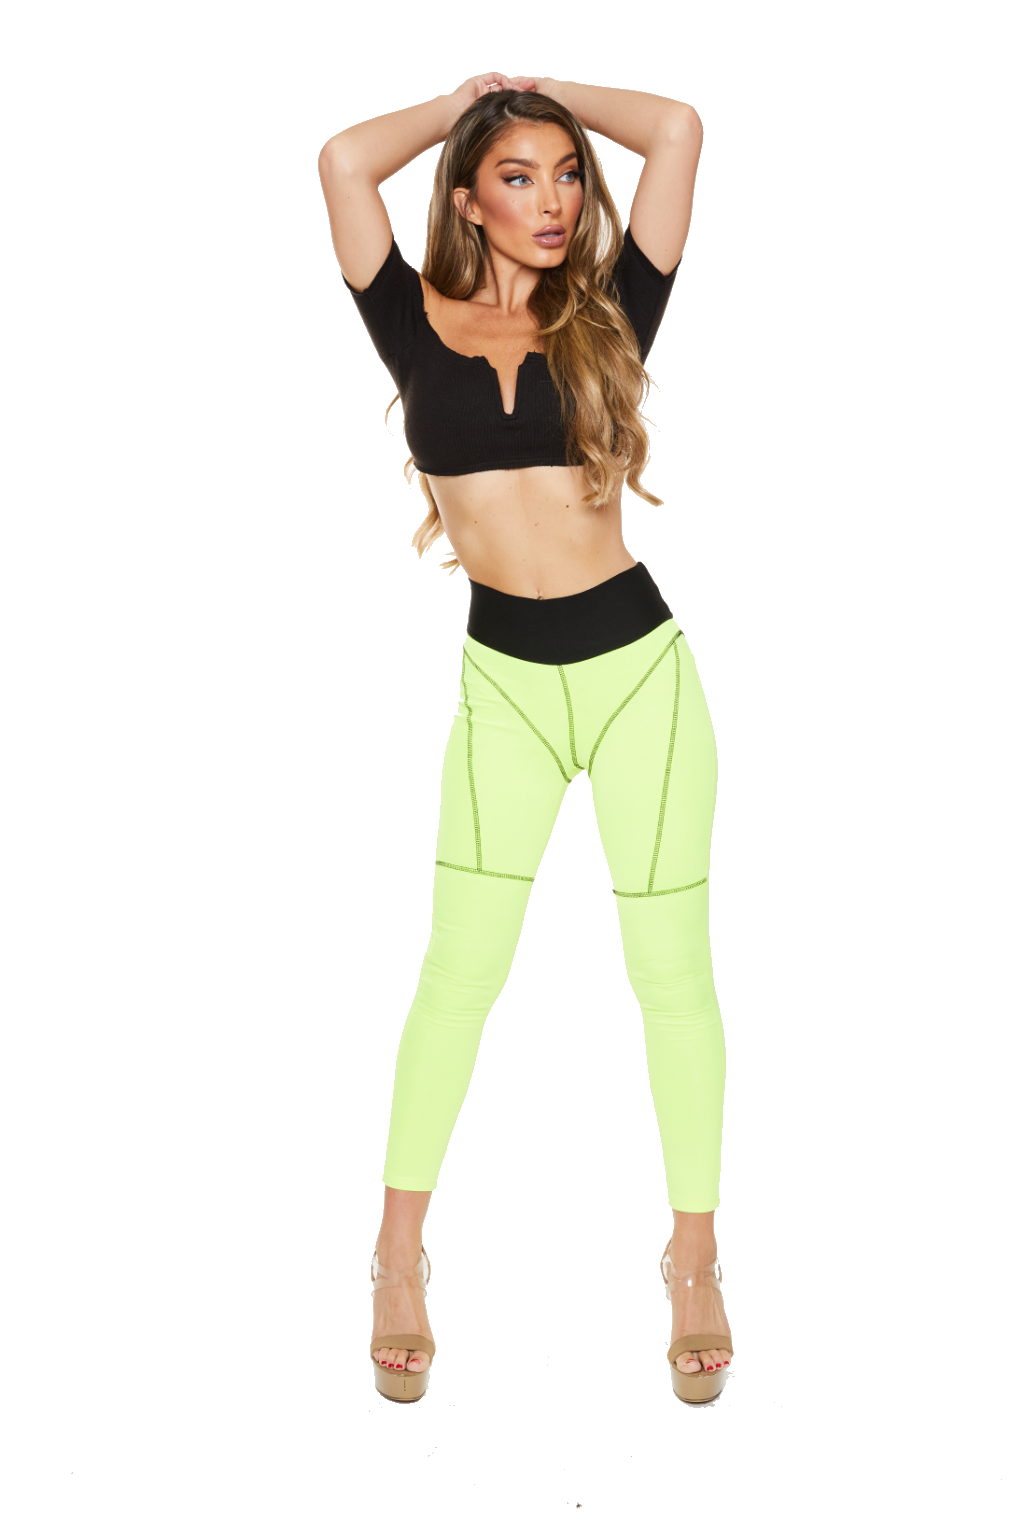 SCUBA STAR LEGGINGS - HIGHLIGHTER YELLOW - www.prettyboutique.com